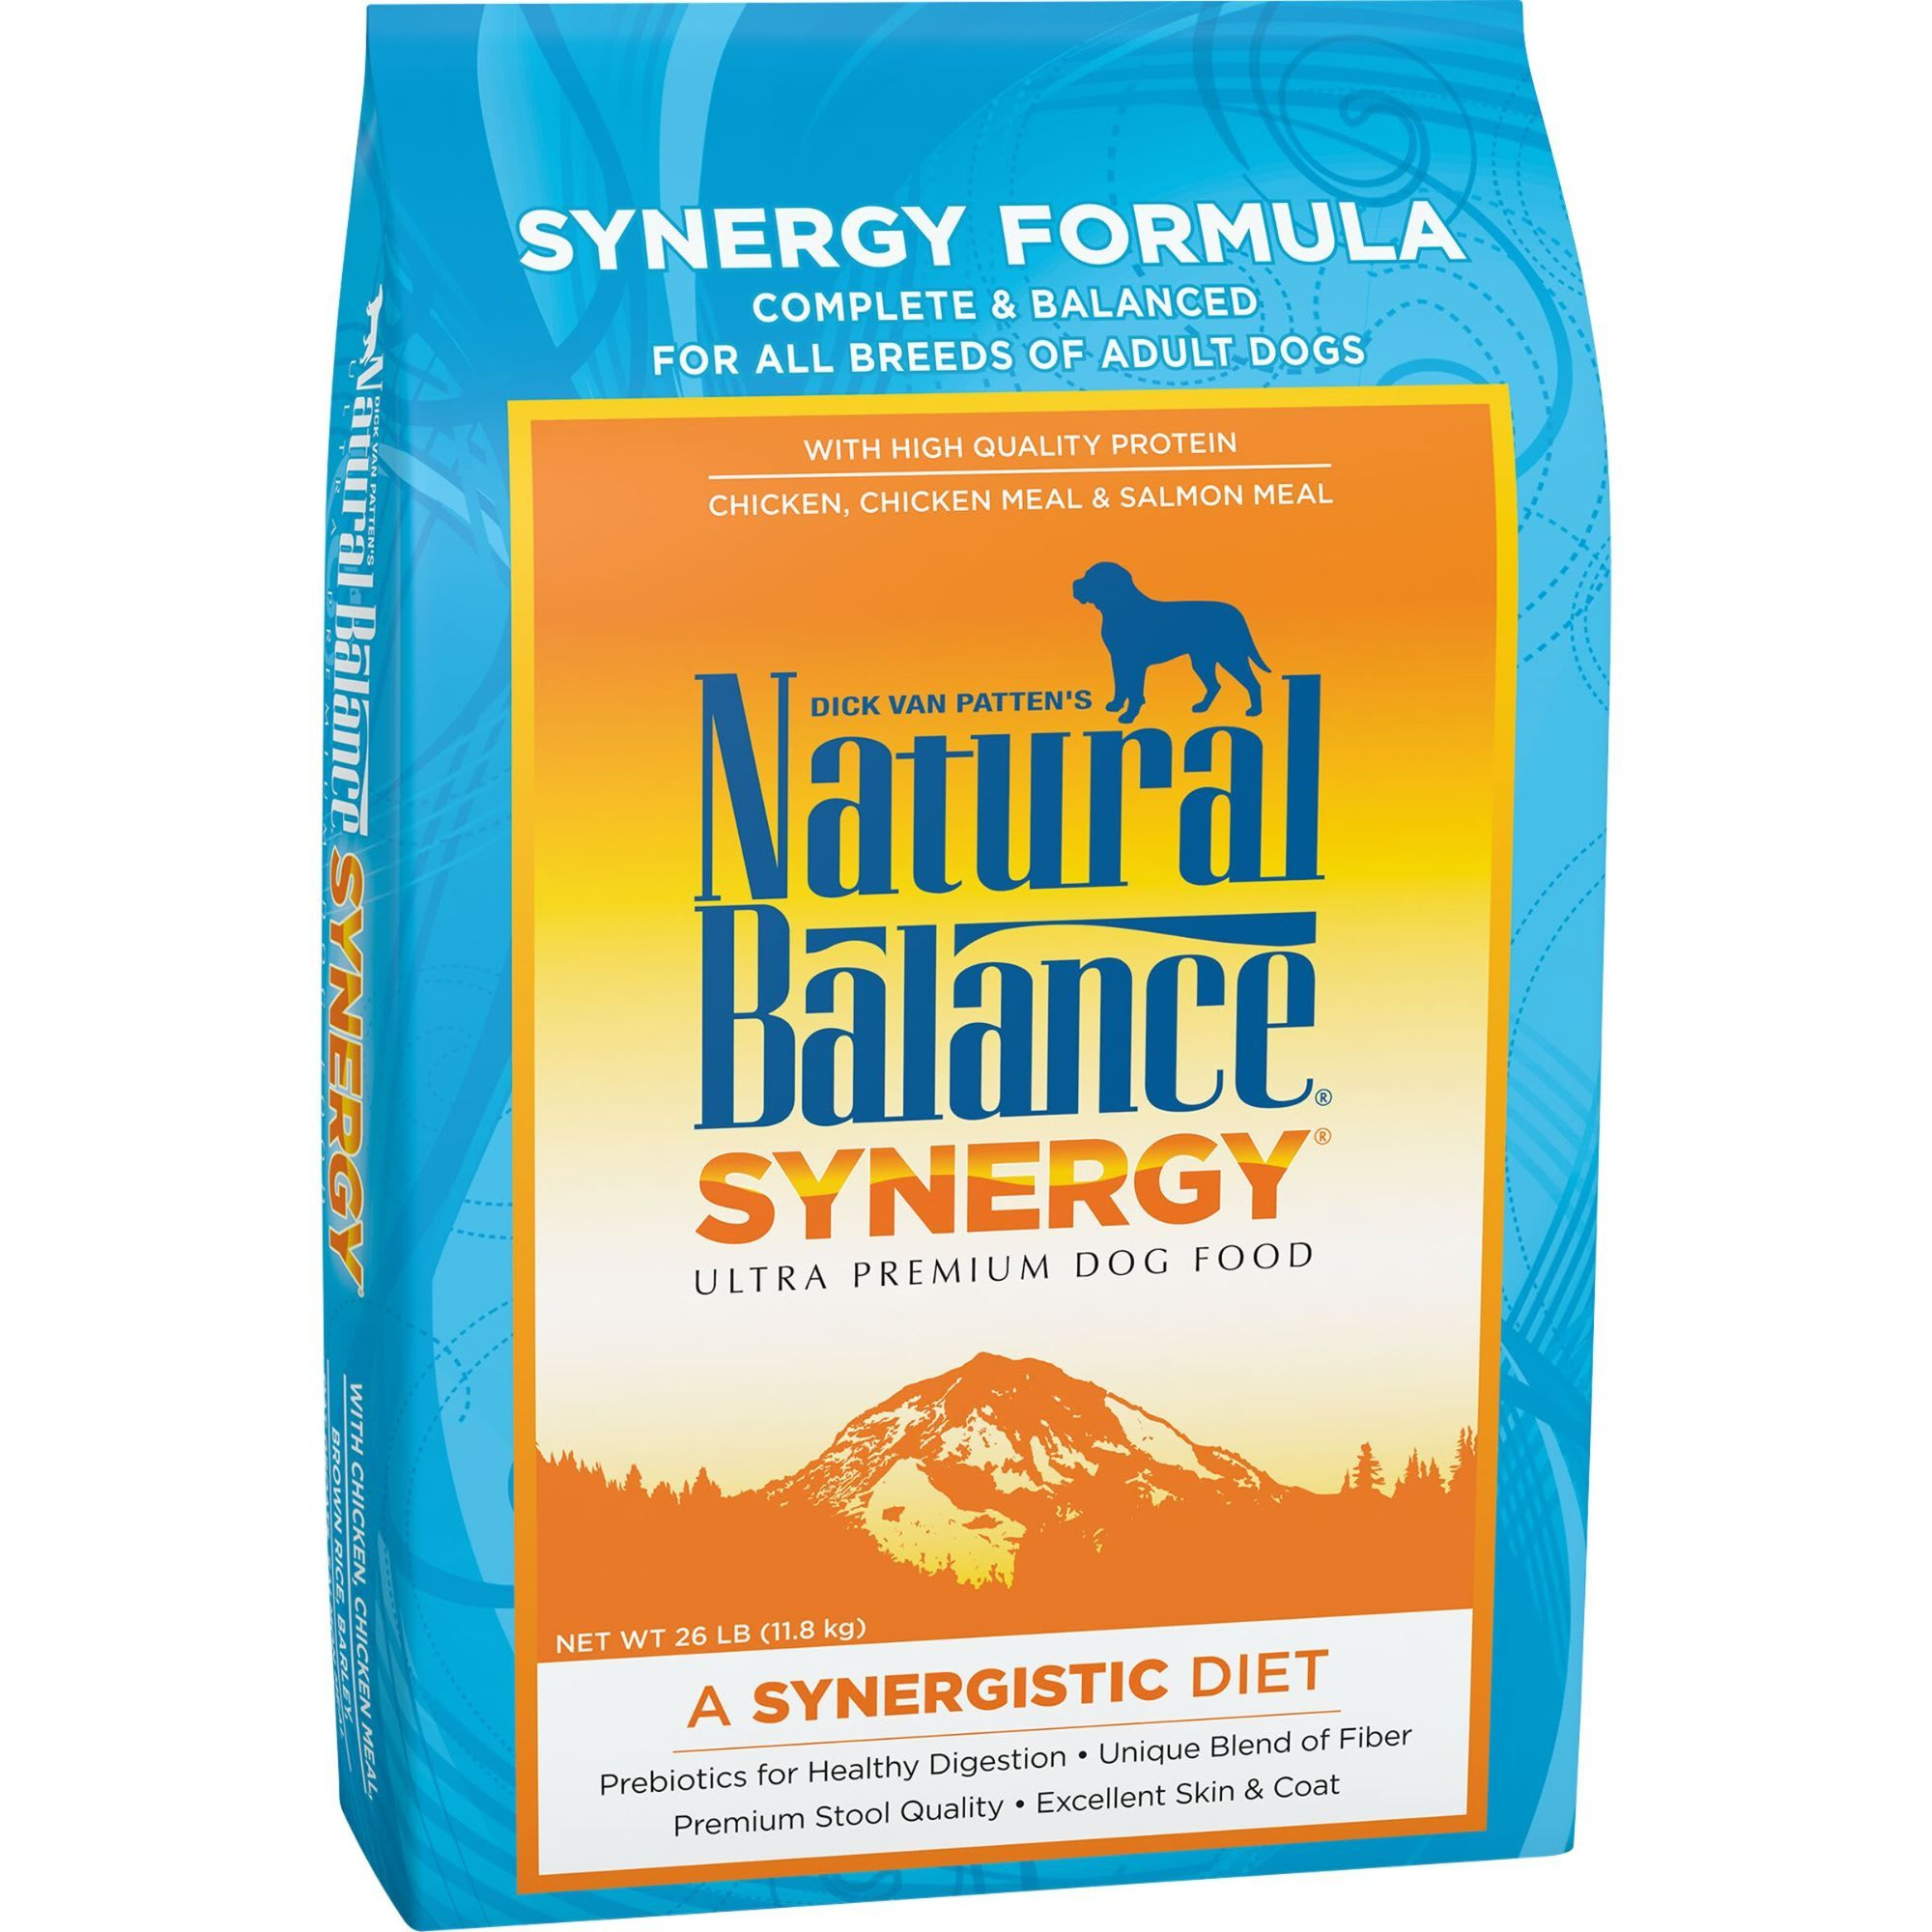 Natural Balance Prebiotics Synergy Chicken Meal Salmon Meal Dry